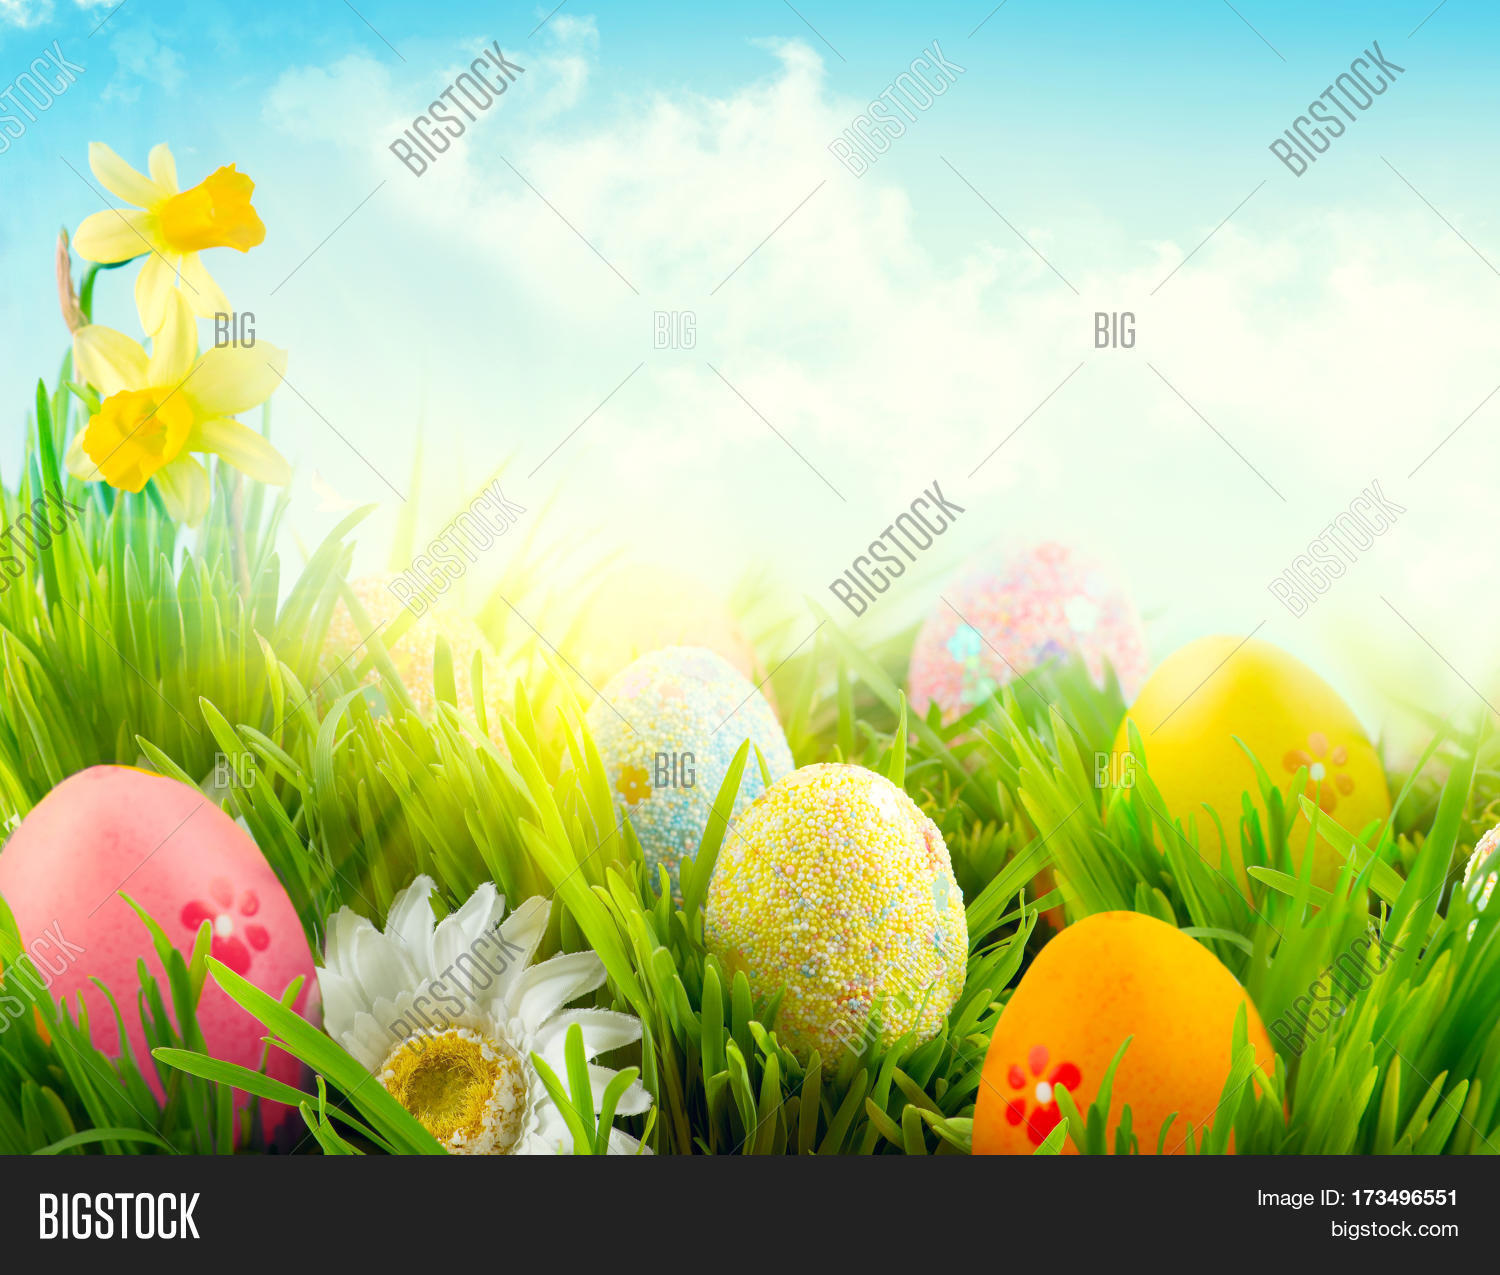 Easter Nature Spring Scene Background Beautiful Colorful Eggs In Grass Meadow Over Blue Sky